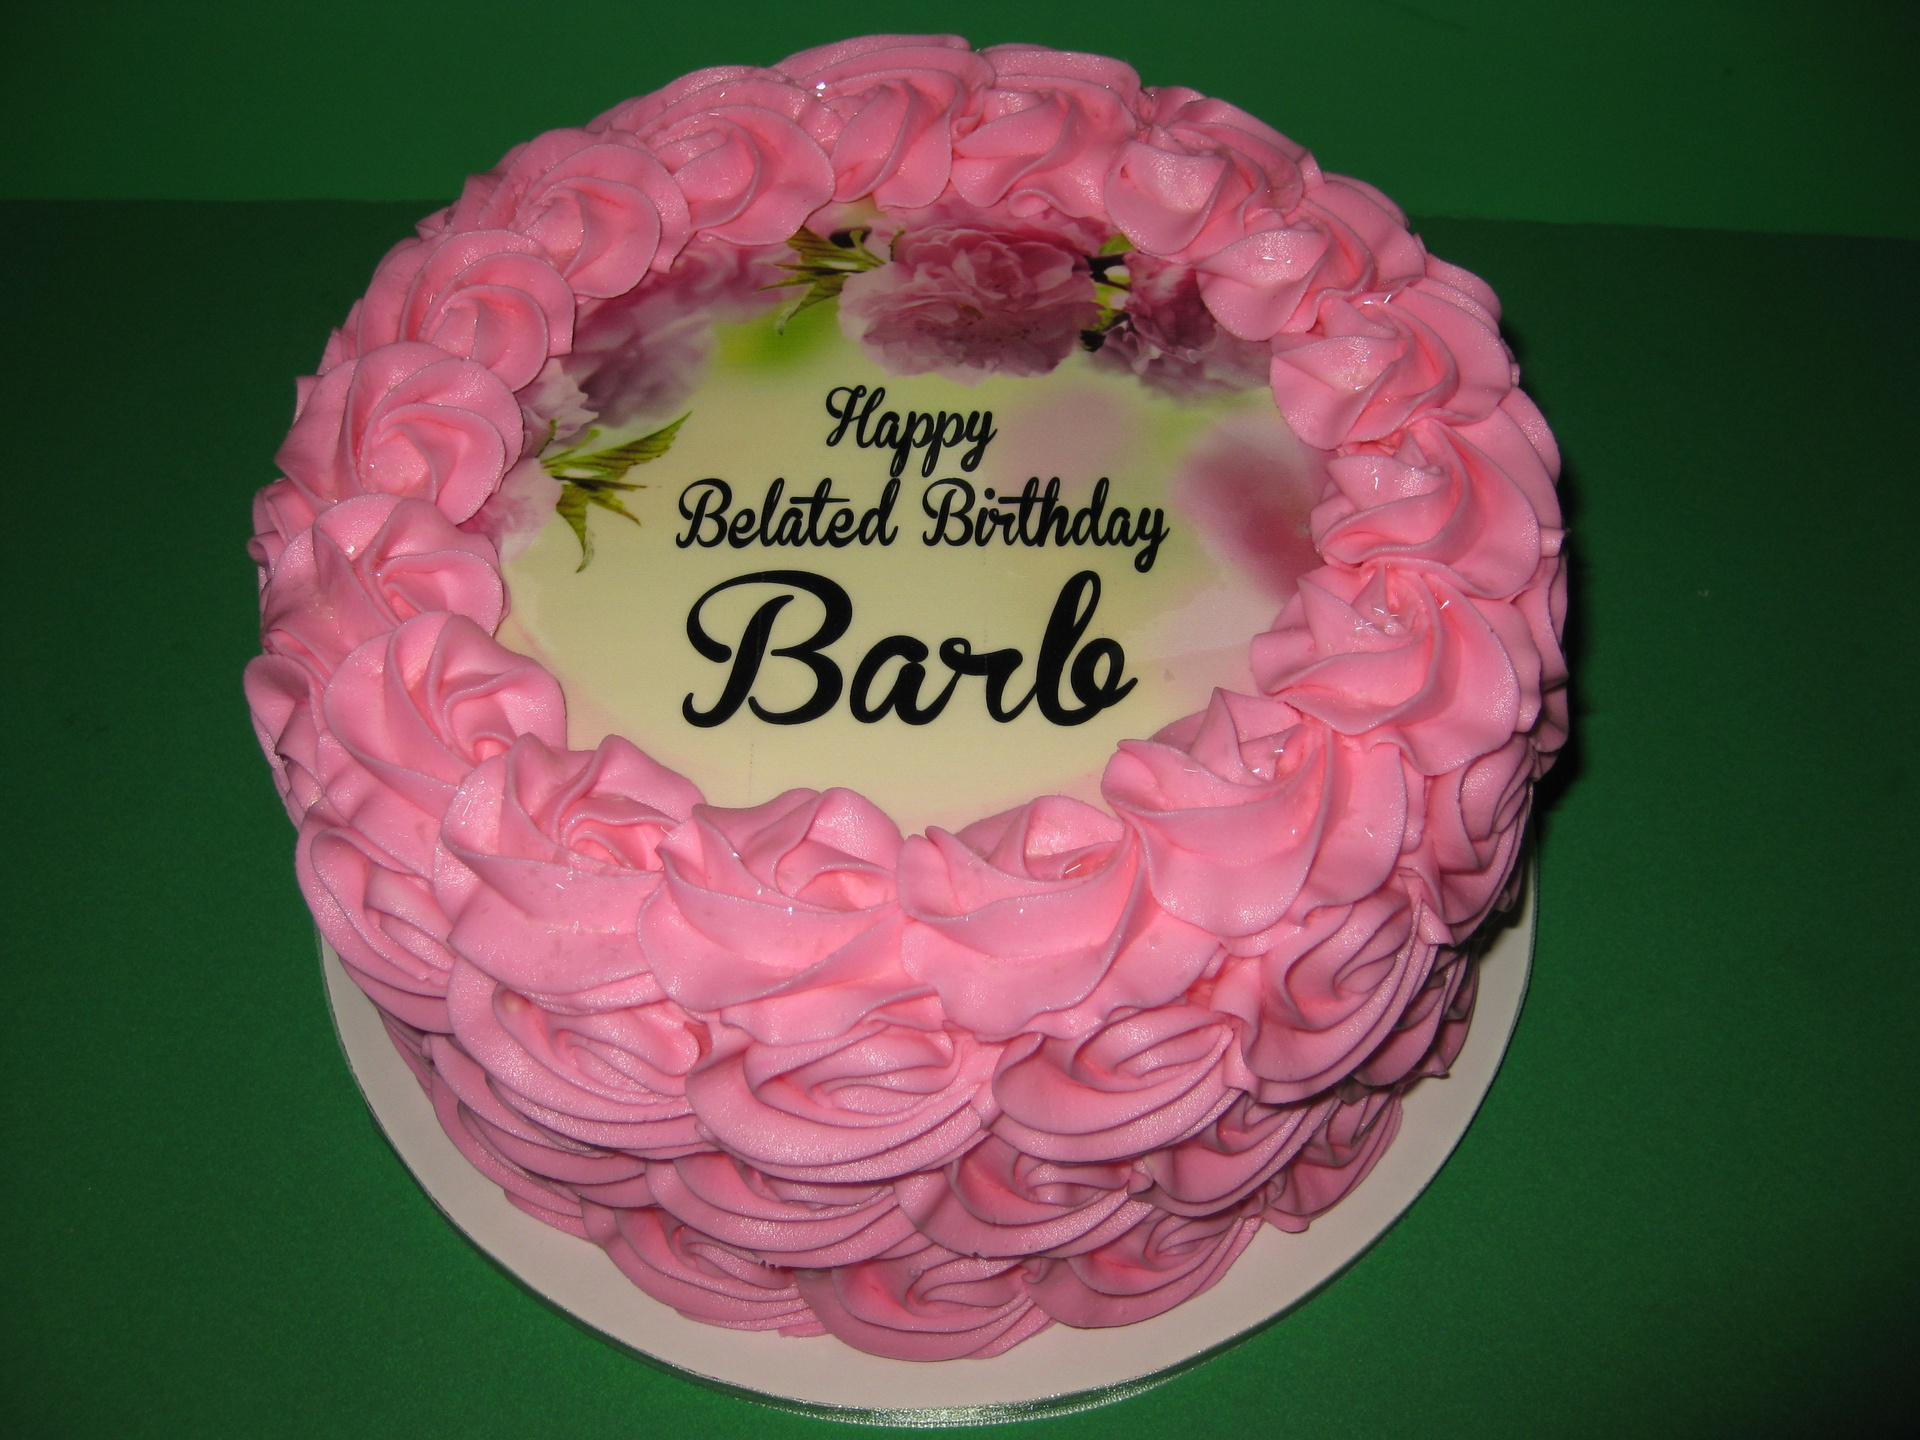 Barb's Belated Birthday Rosette Cake